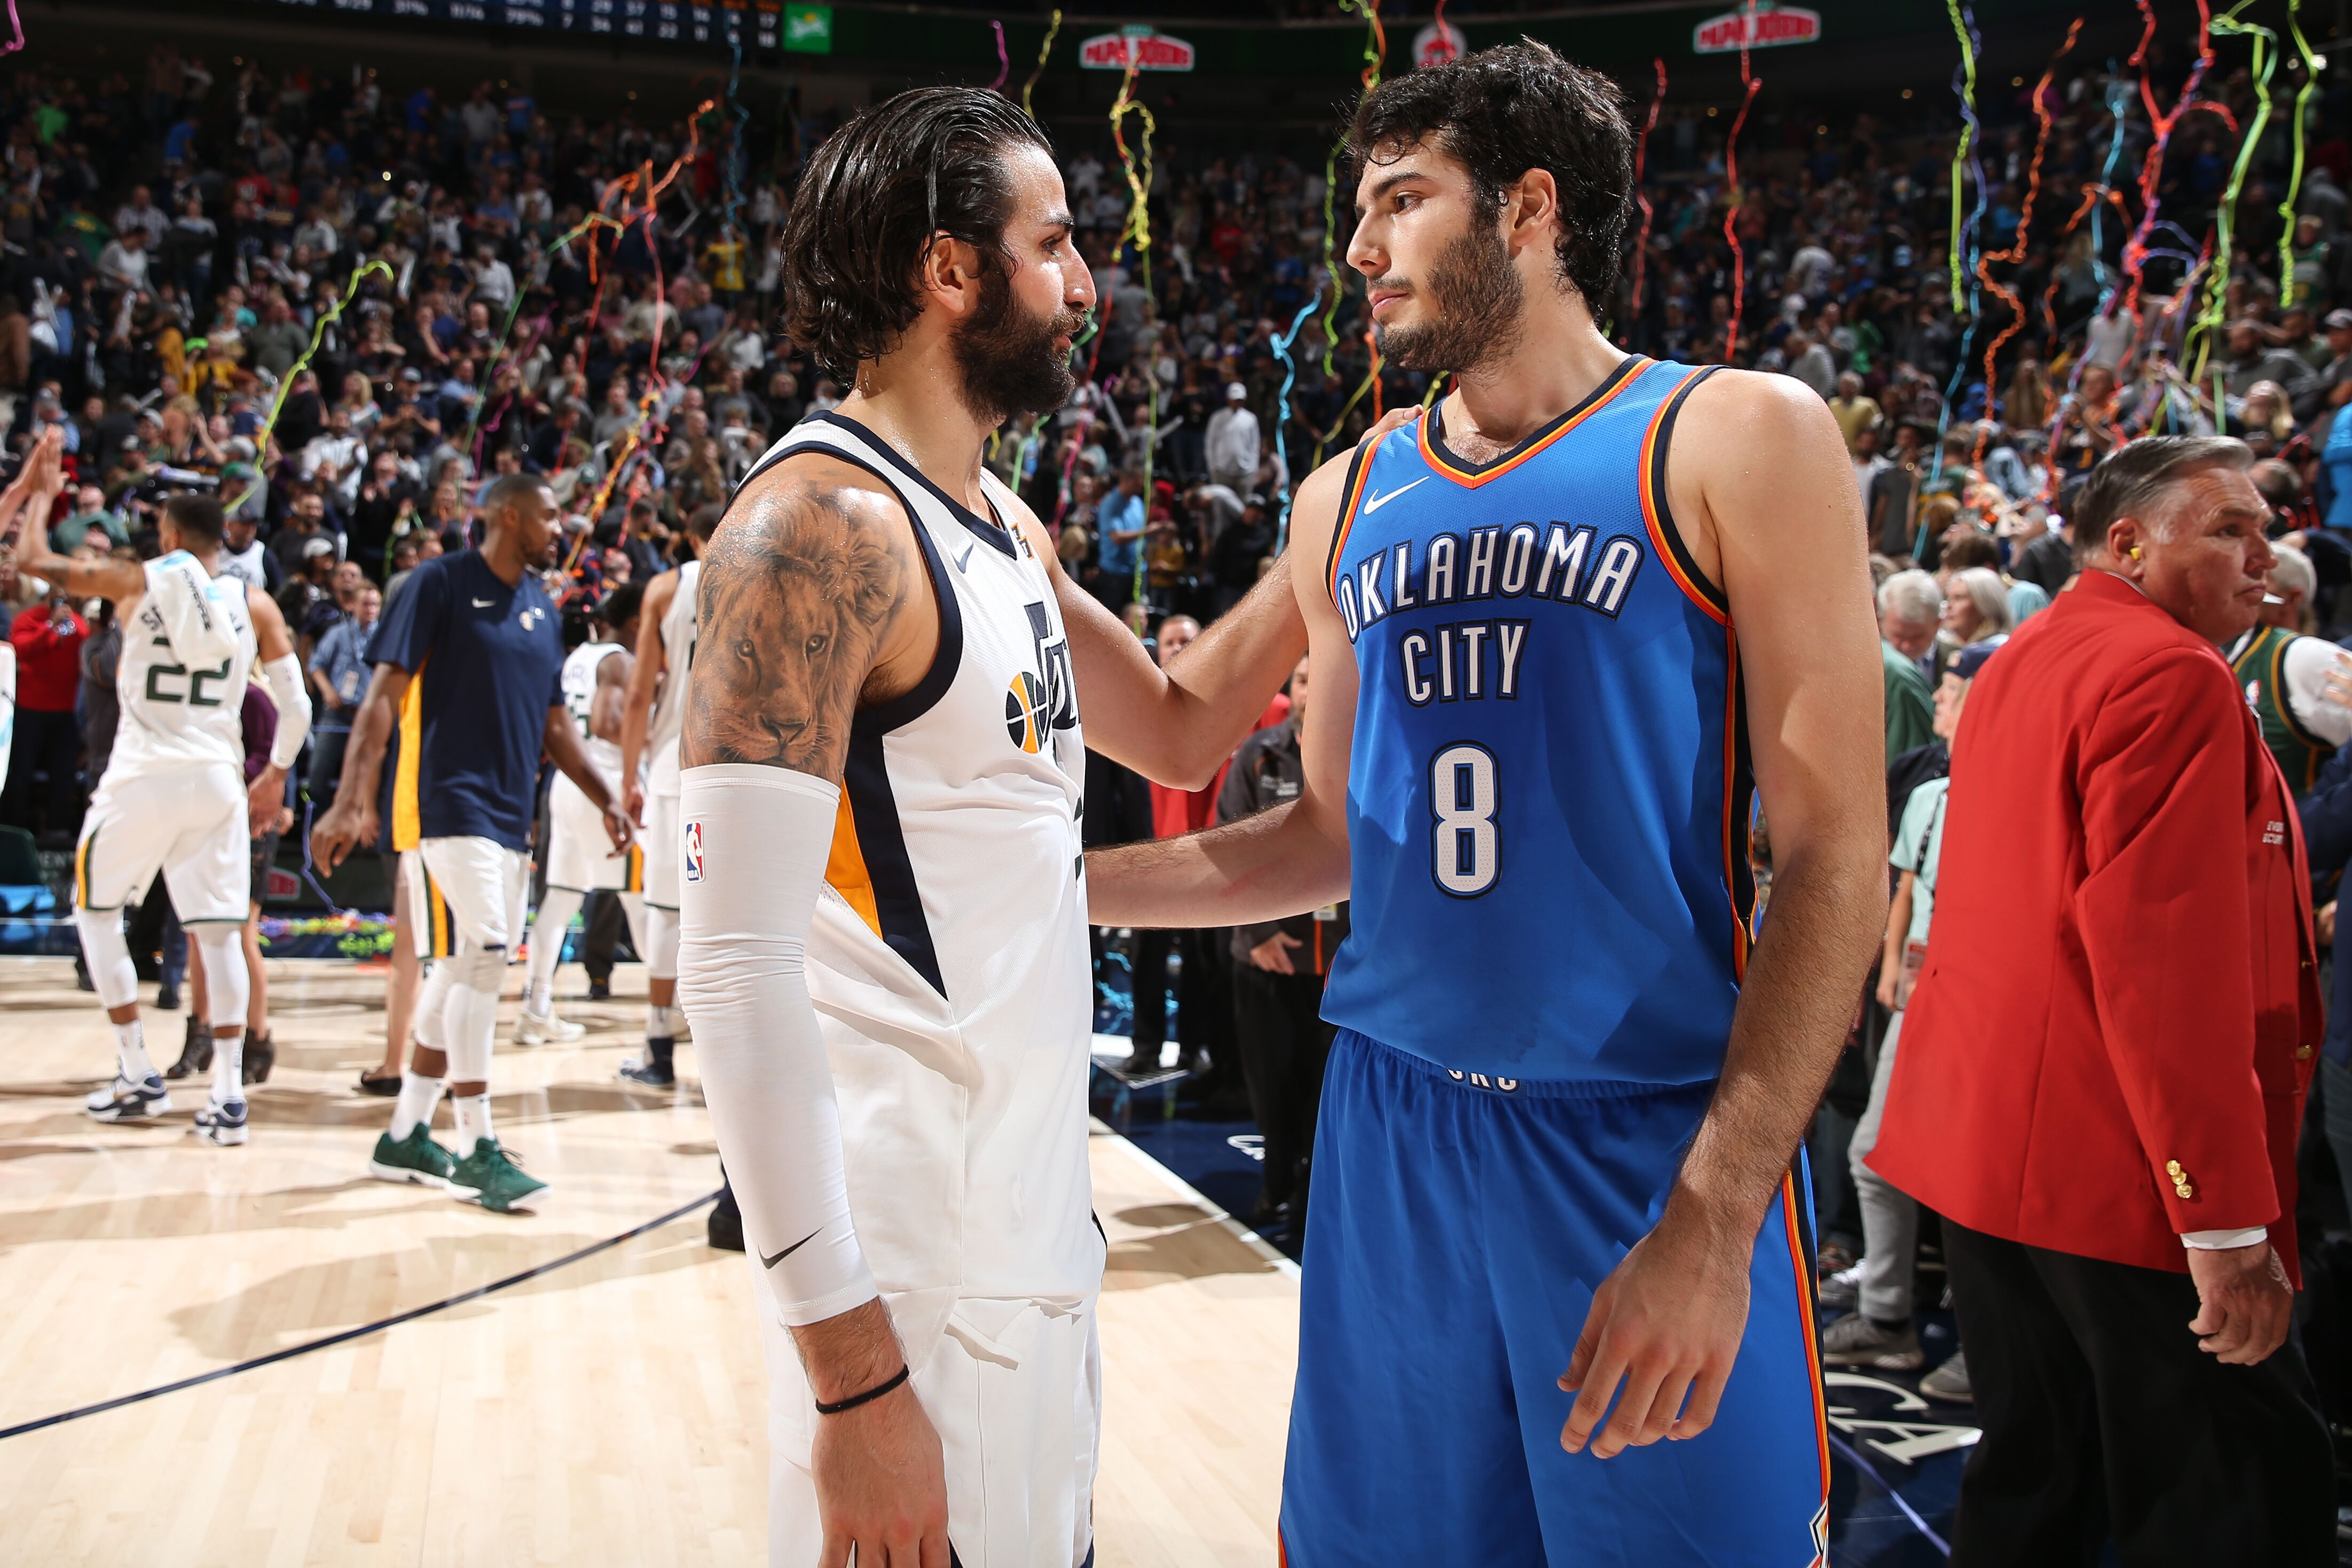 Utah Jazz at OKC Keys to close out the road trip with a